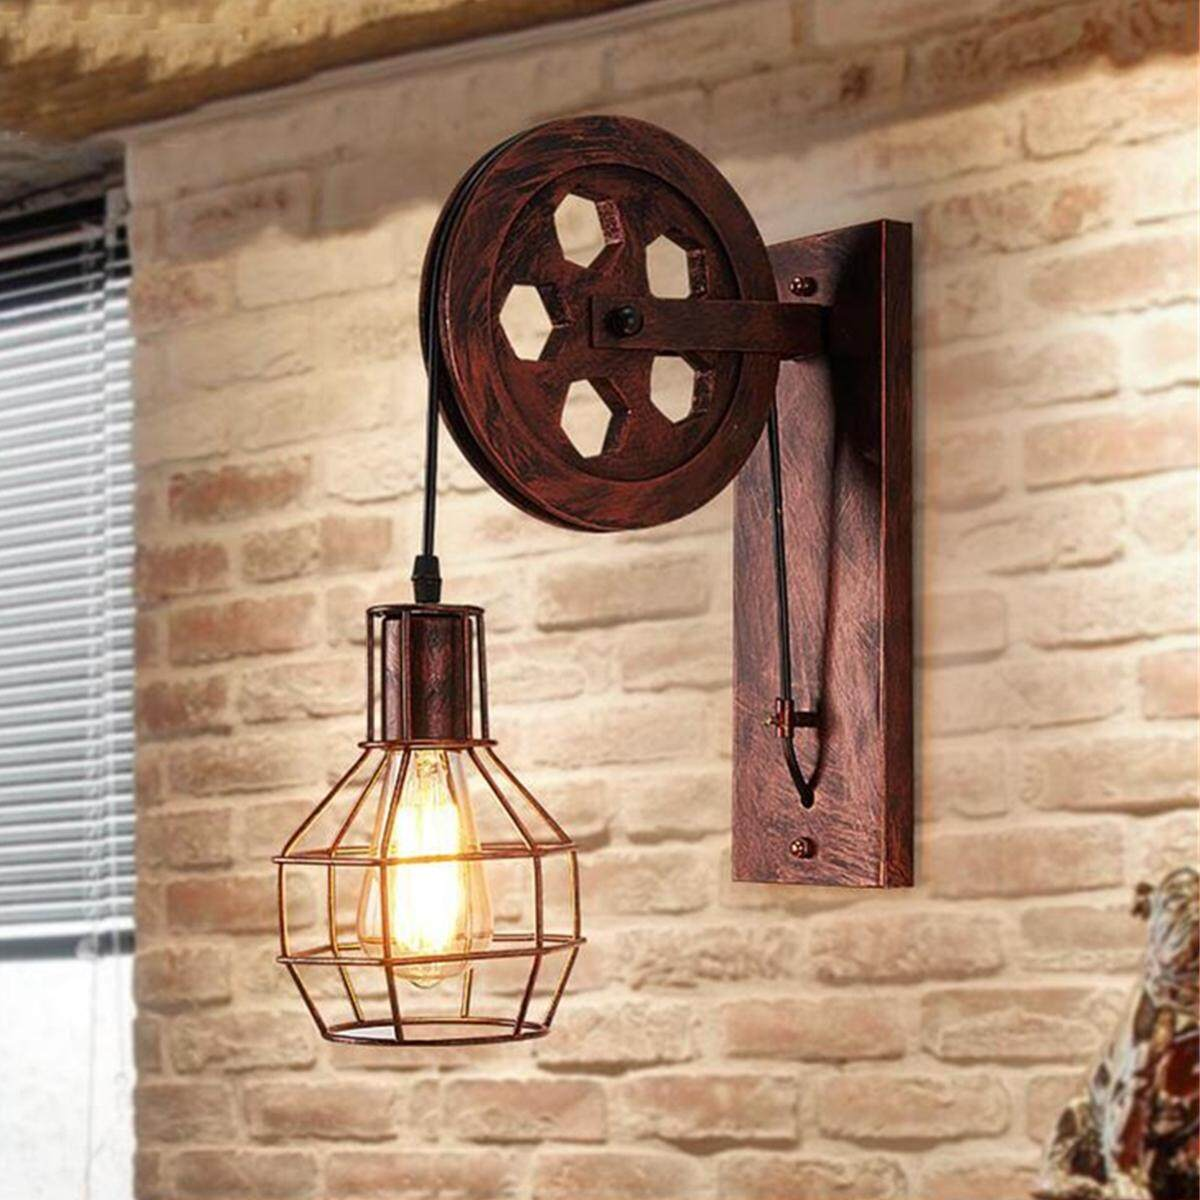 Pulley Retro Industrial Style Lamp Wall Mount Light Iron Bedroom Living Room NEW